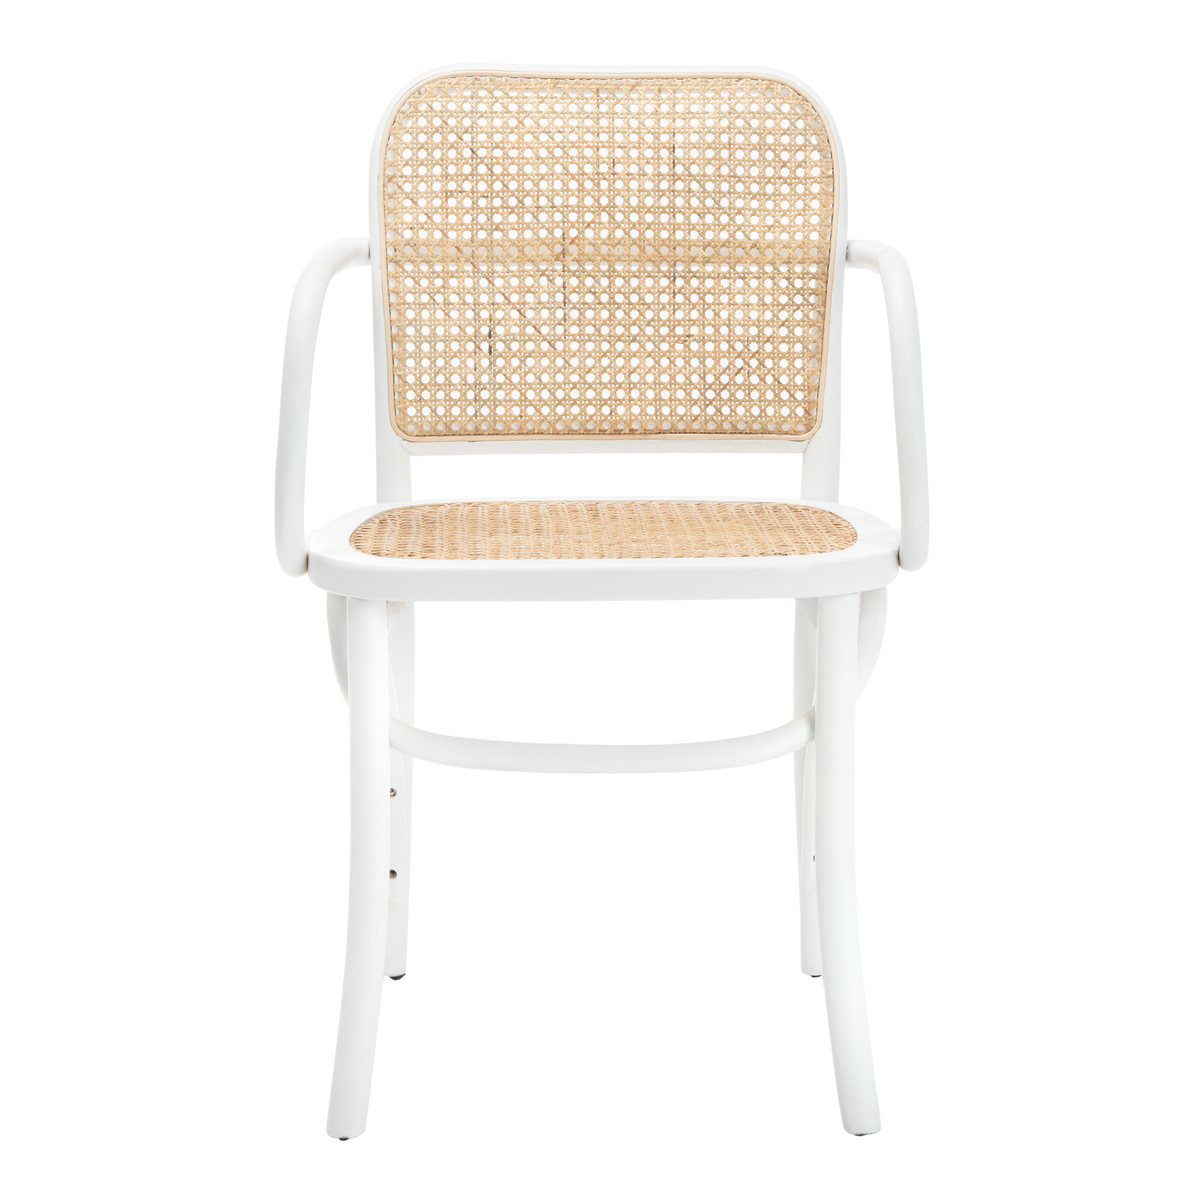 White & Natural Keiko Cane Dining Chair